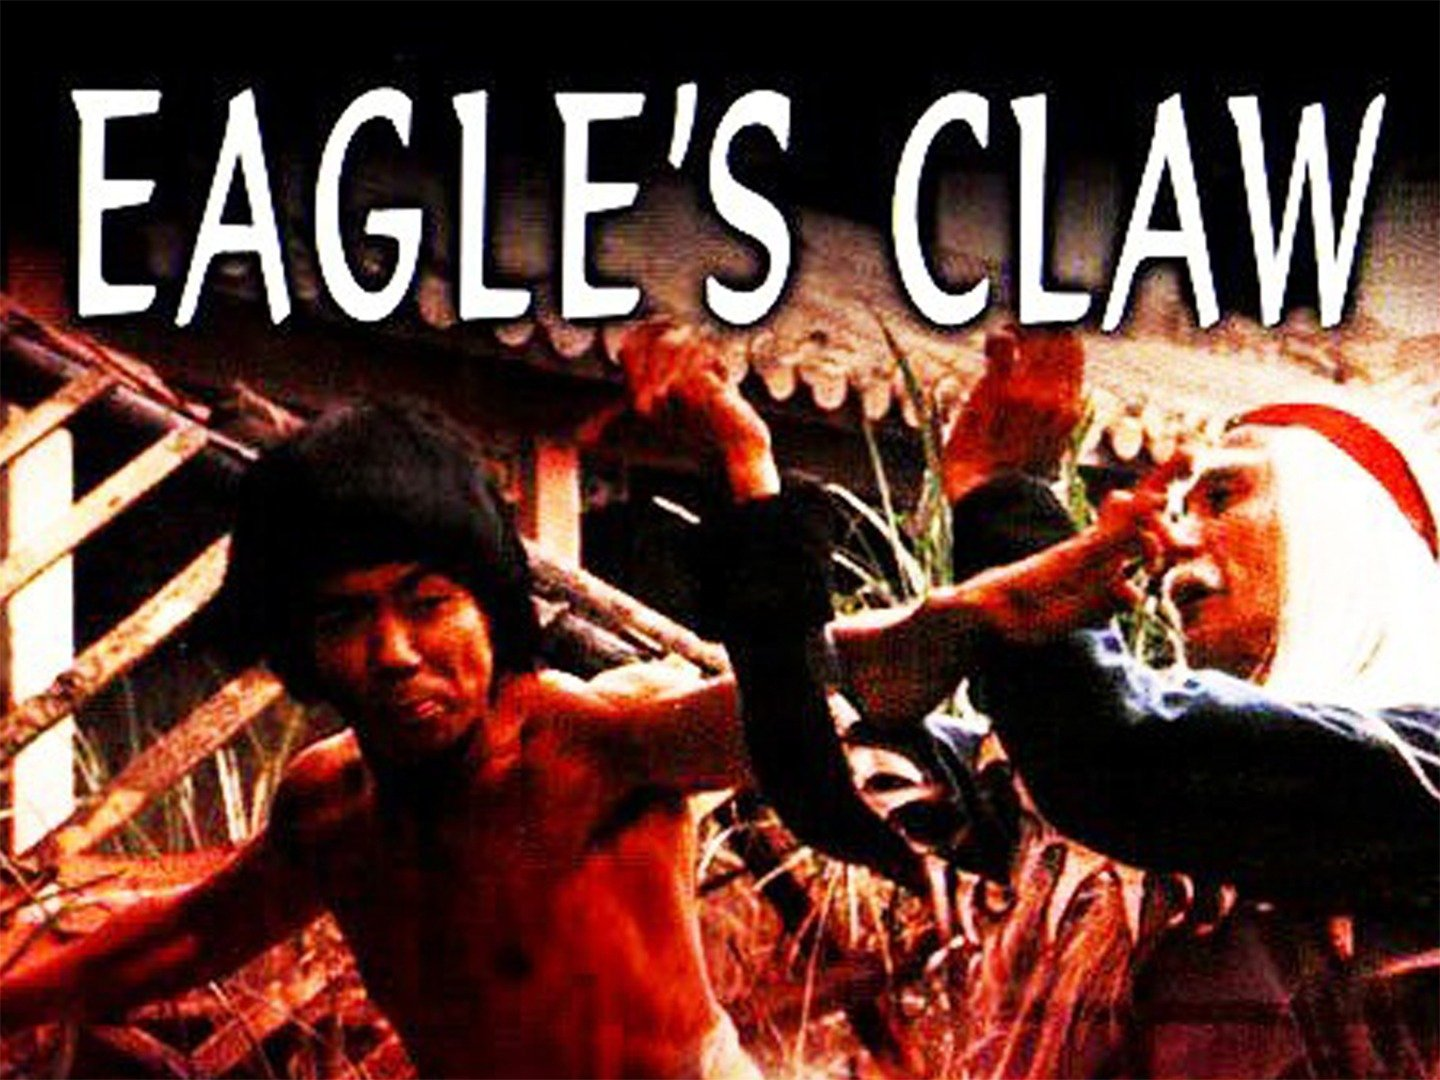 Eagle's Claws